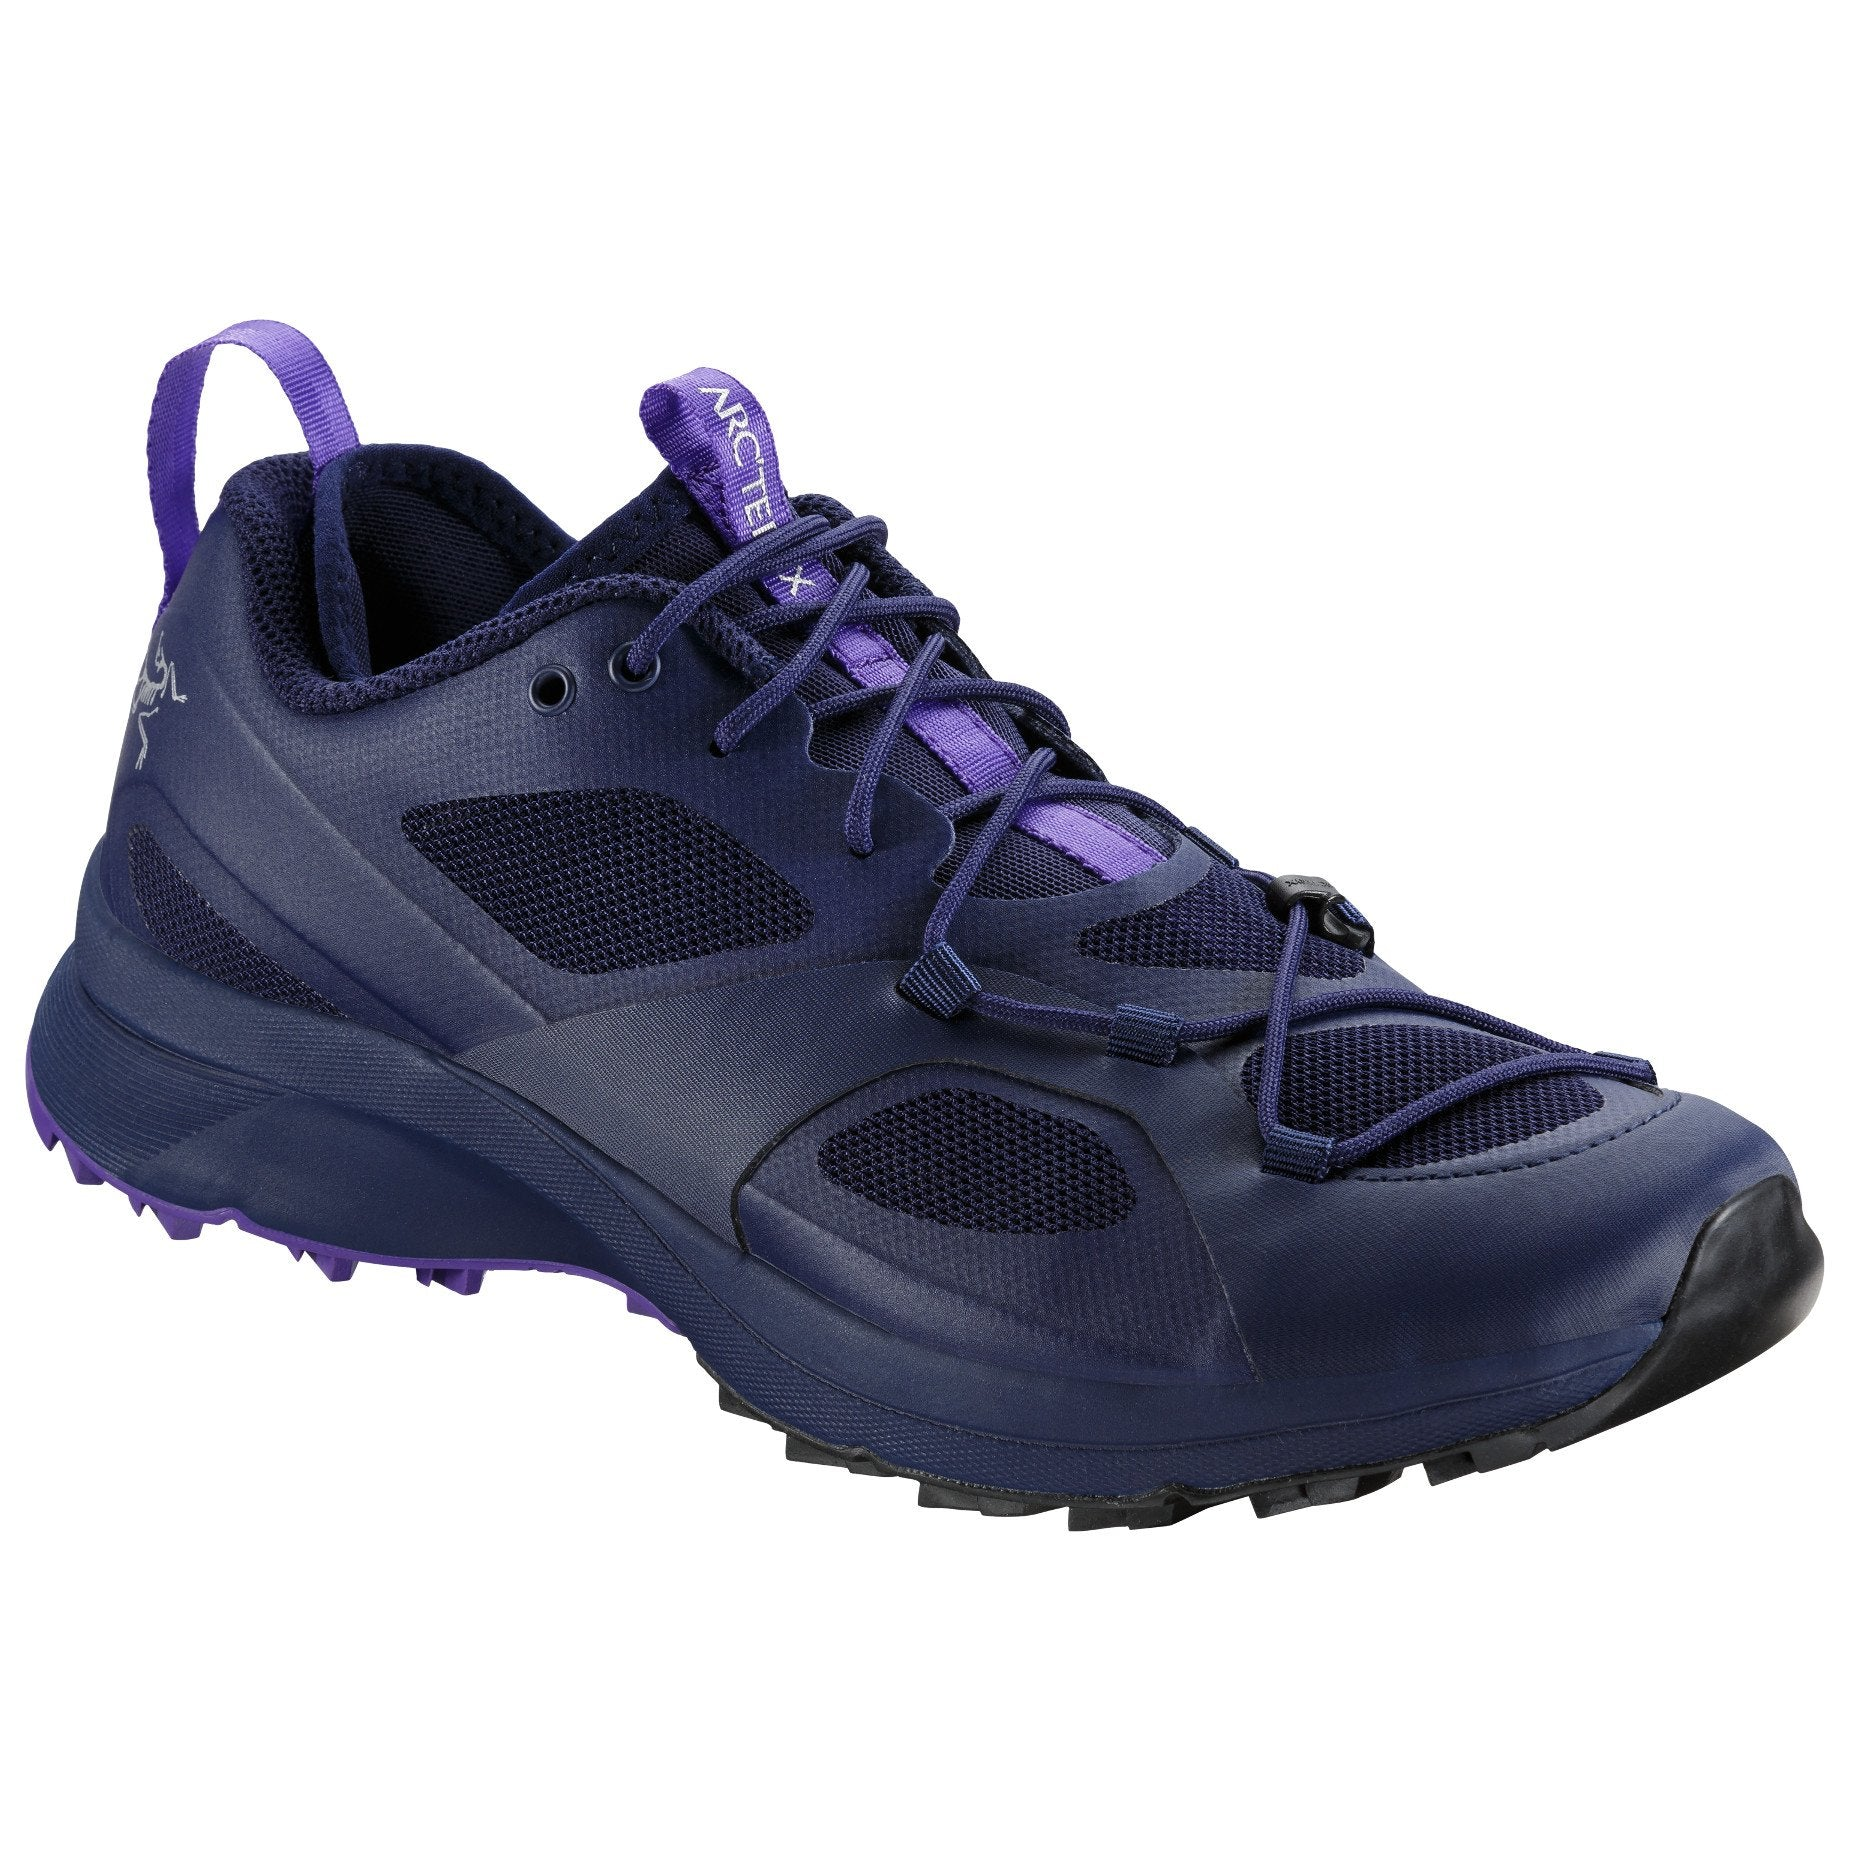 ArcTeryx Norvan VT Womens trail running shoe, in purple/black colours, outer side view